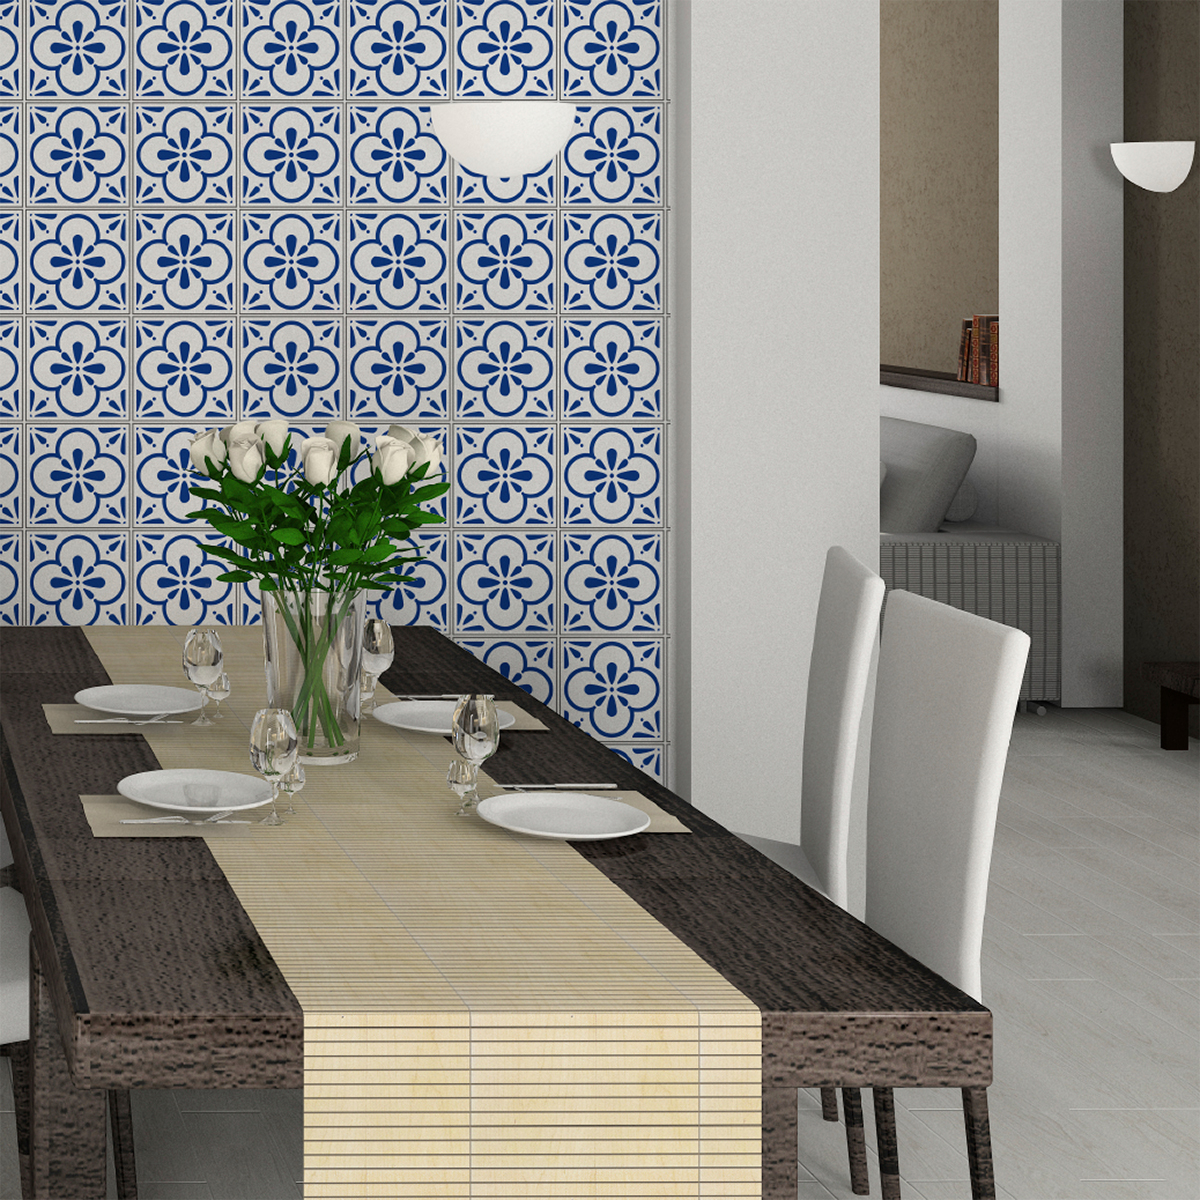 30 stickers carreaux de ciment azulejos aroha cuisine carrelages ambiance sticker. Black Bedroom Furniture Sets. Home Design Ideas